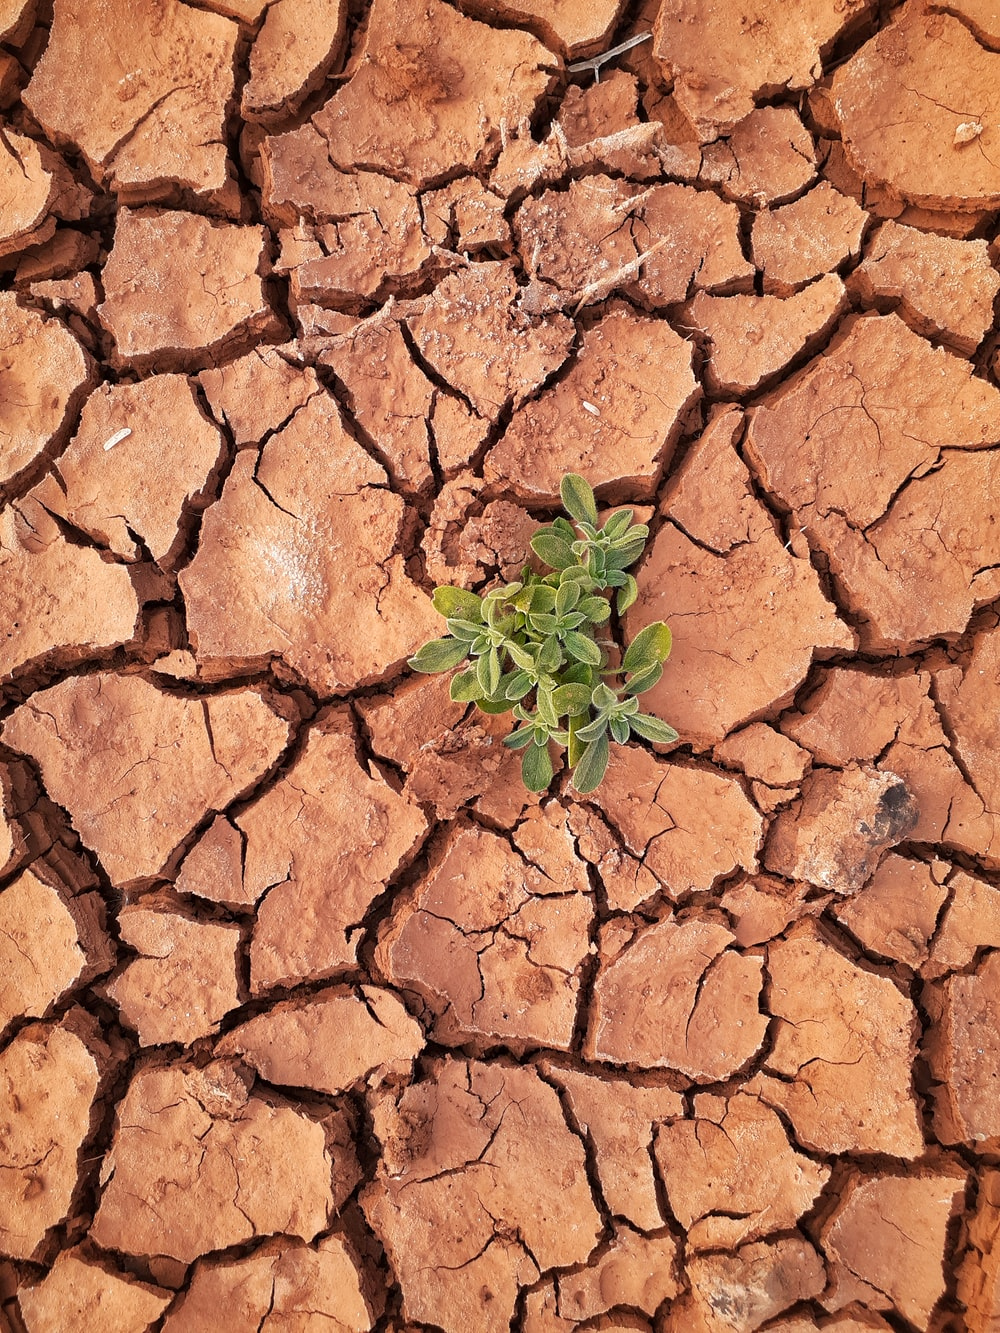 green plant on brown soil